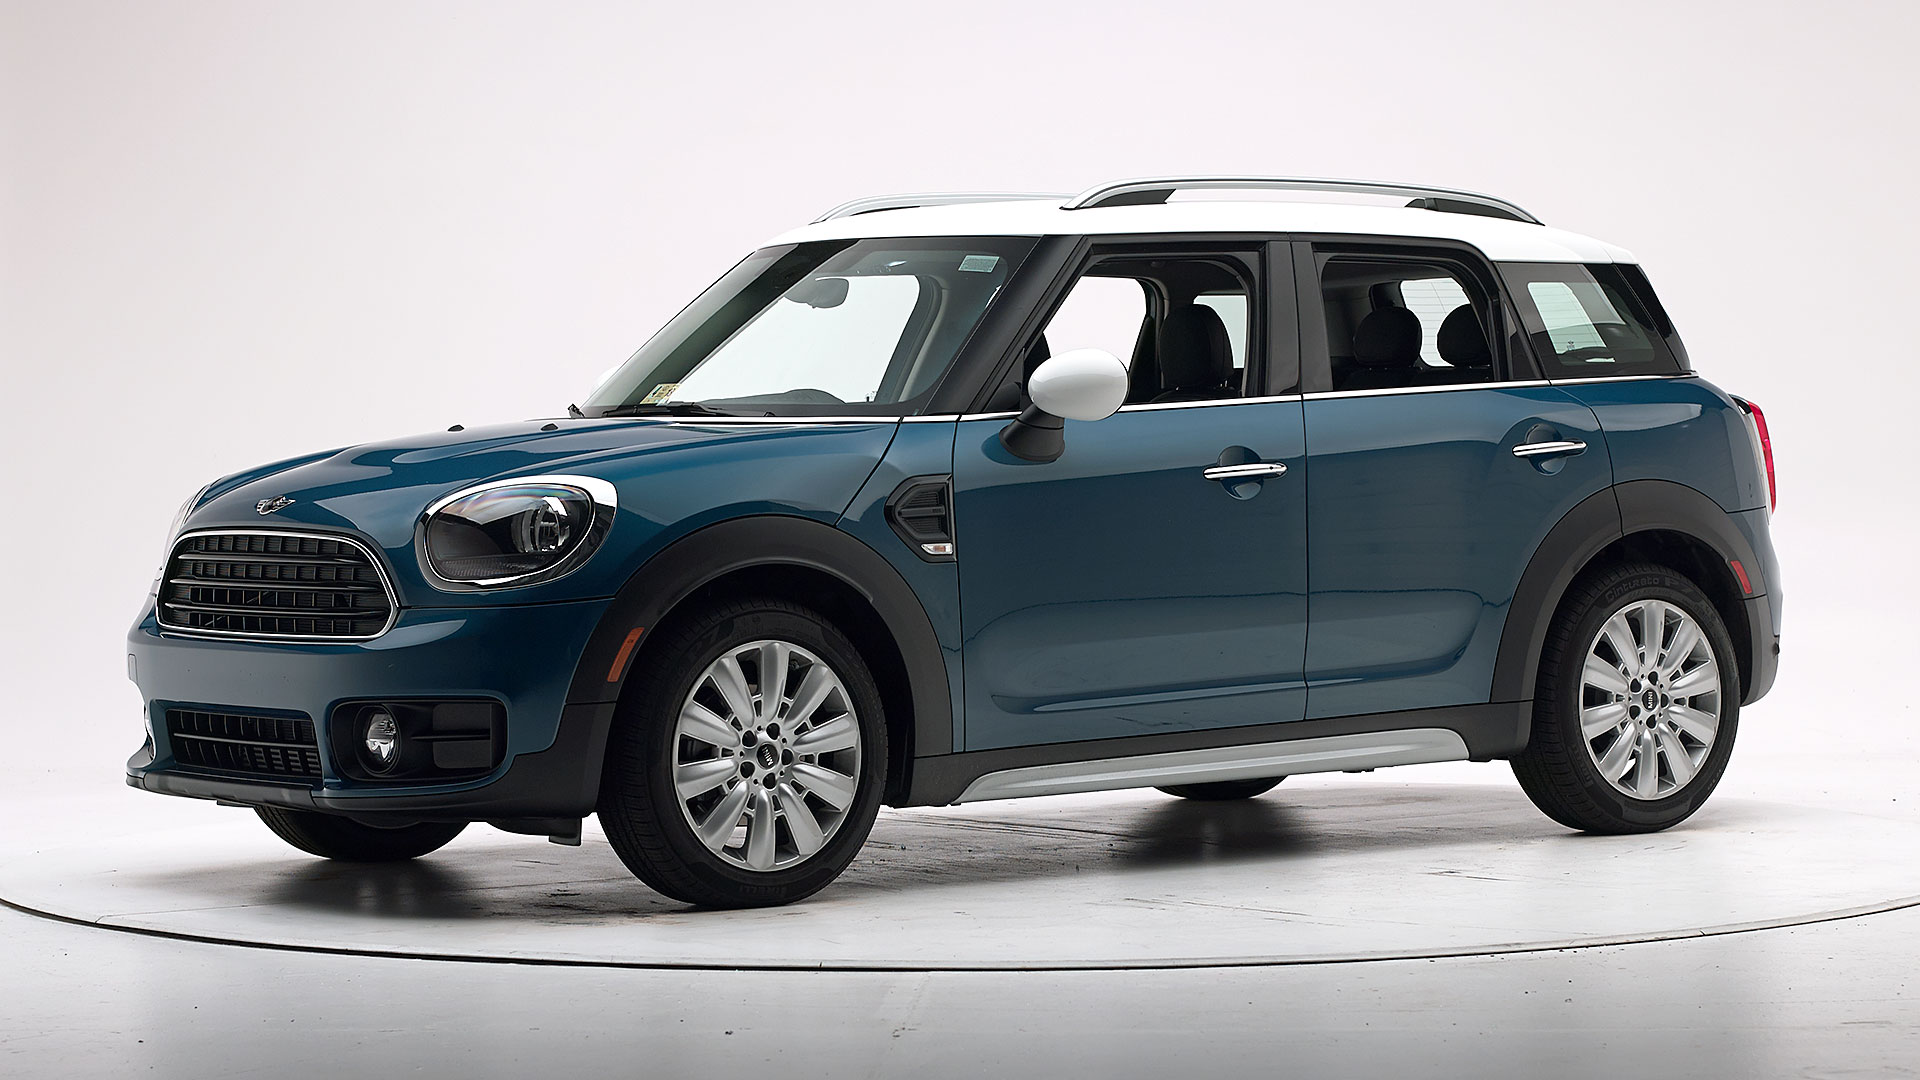 2020 Mini Countryman 4-door hatchback